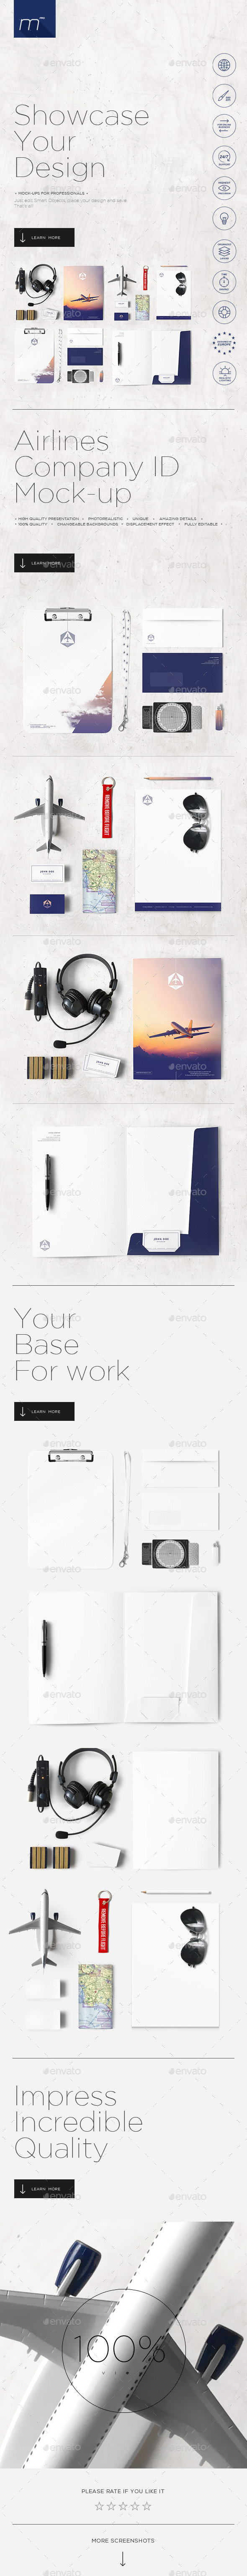 GraphicRiver Airlines Company Identity Mock-up 11530260